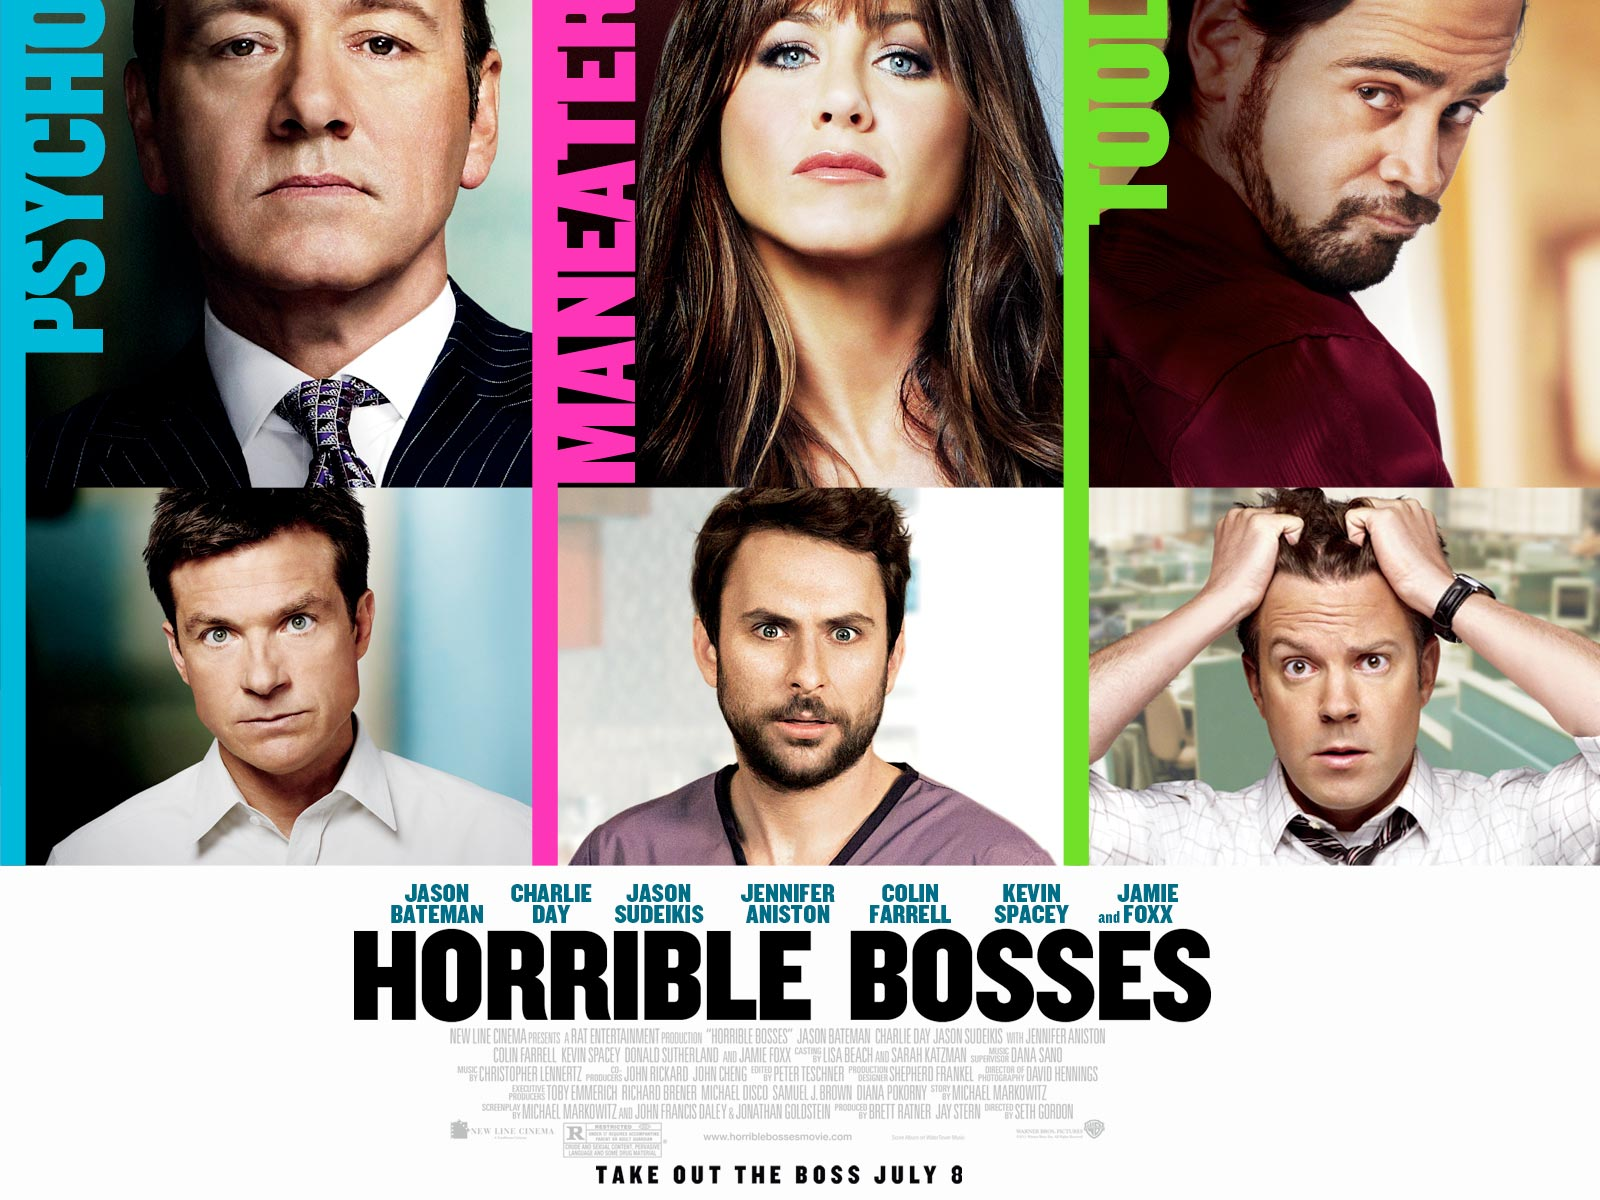 I Can't Get No Job Satisfaction – Horrible Bosses